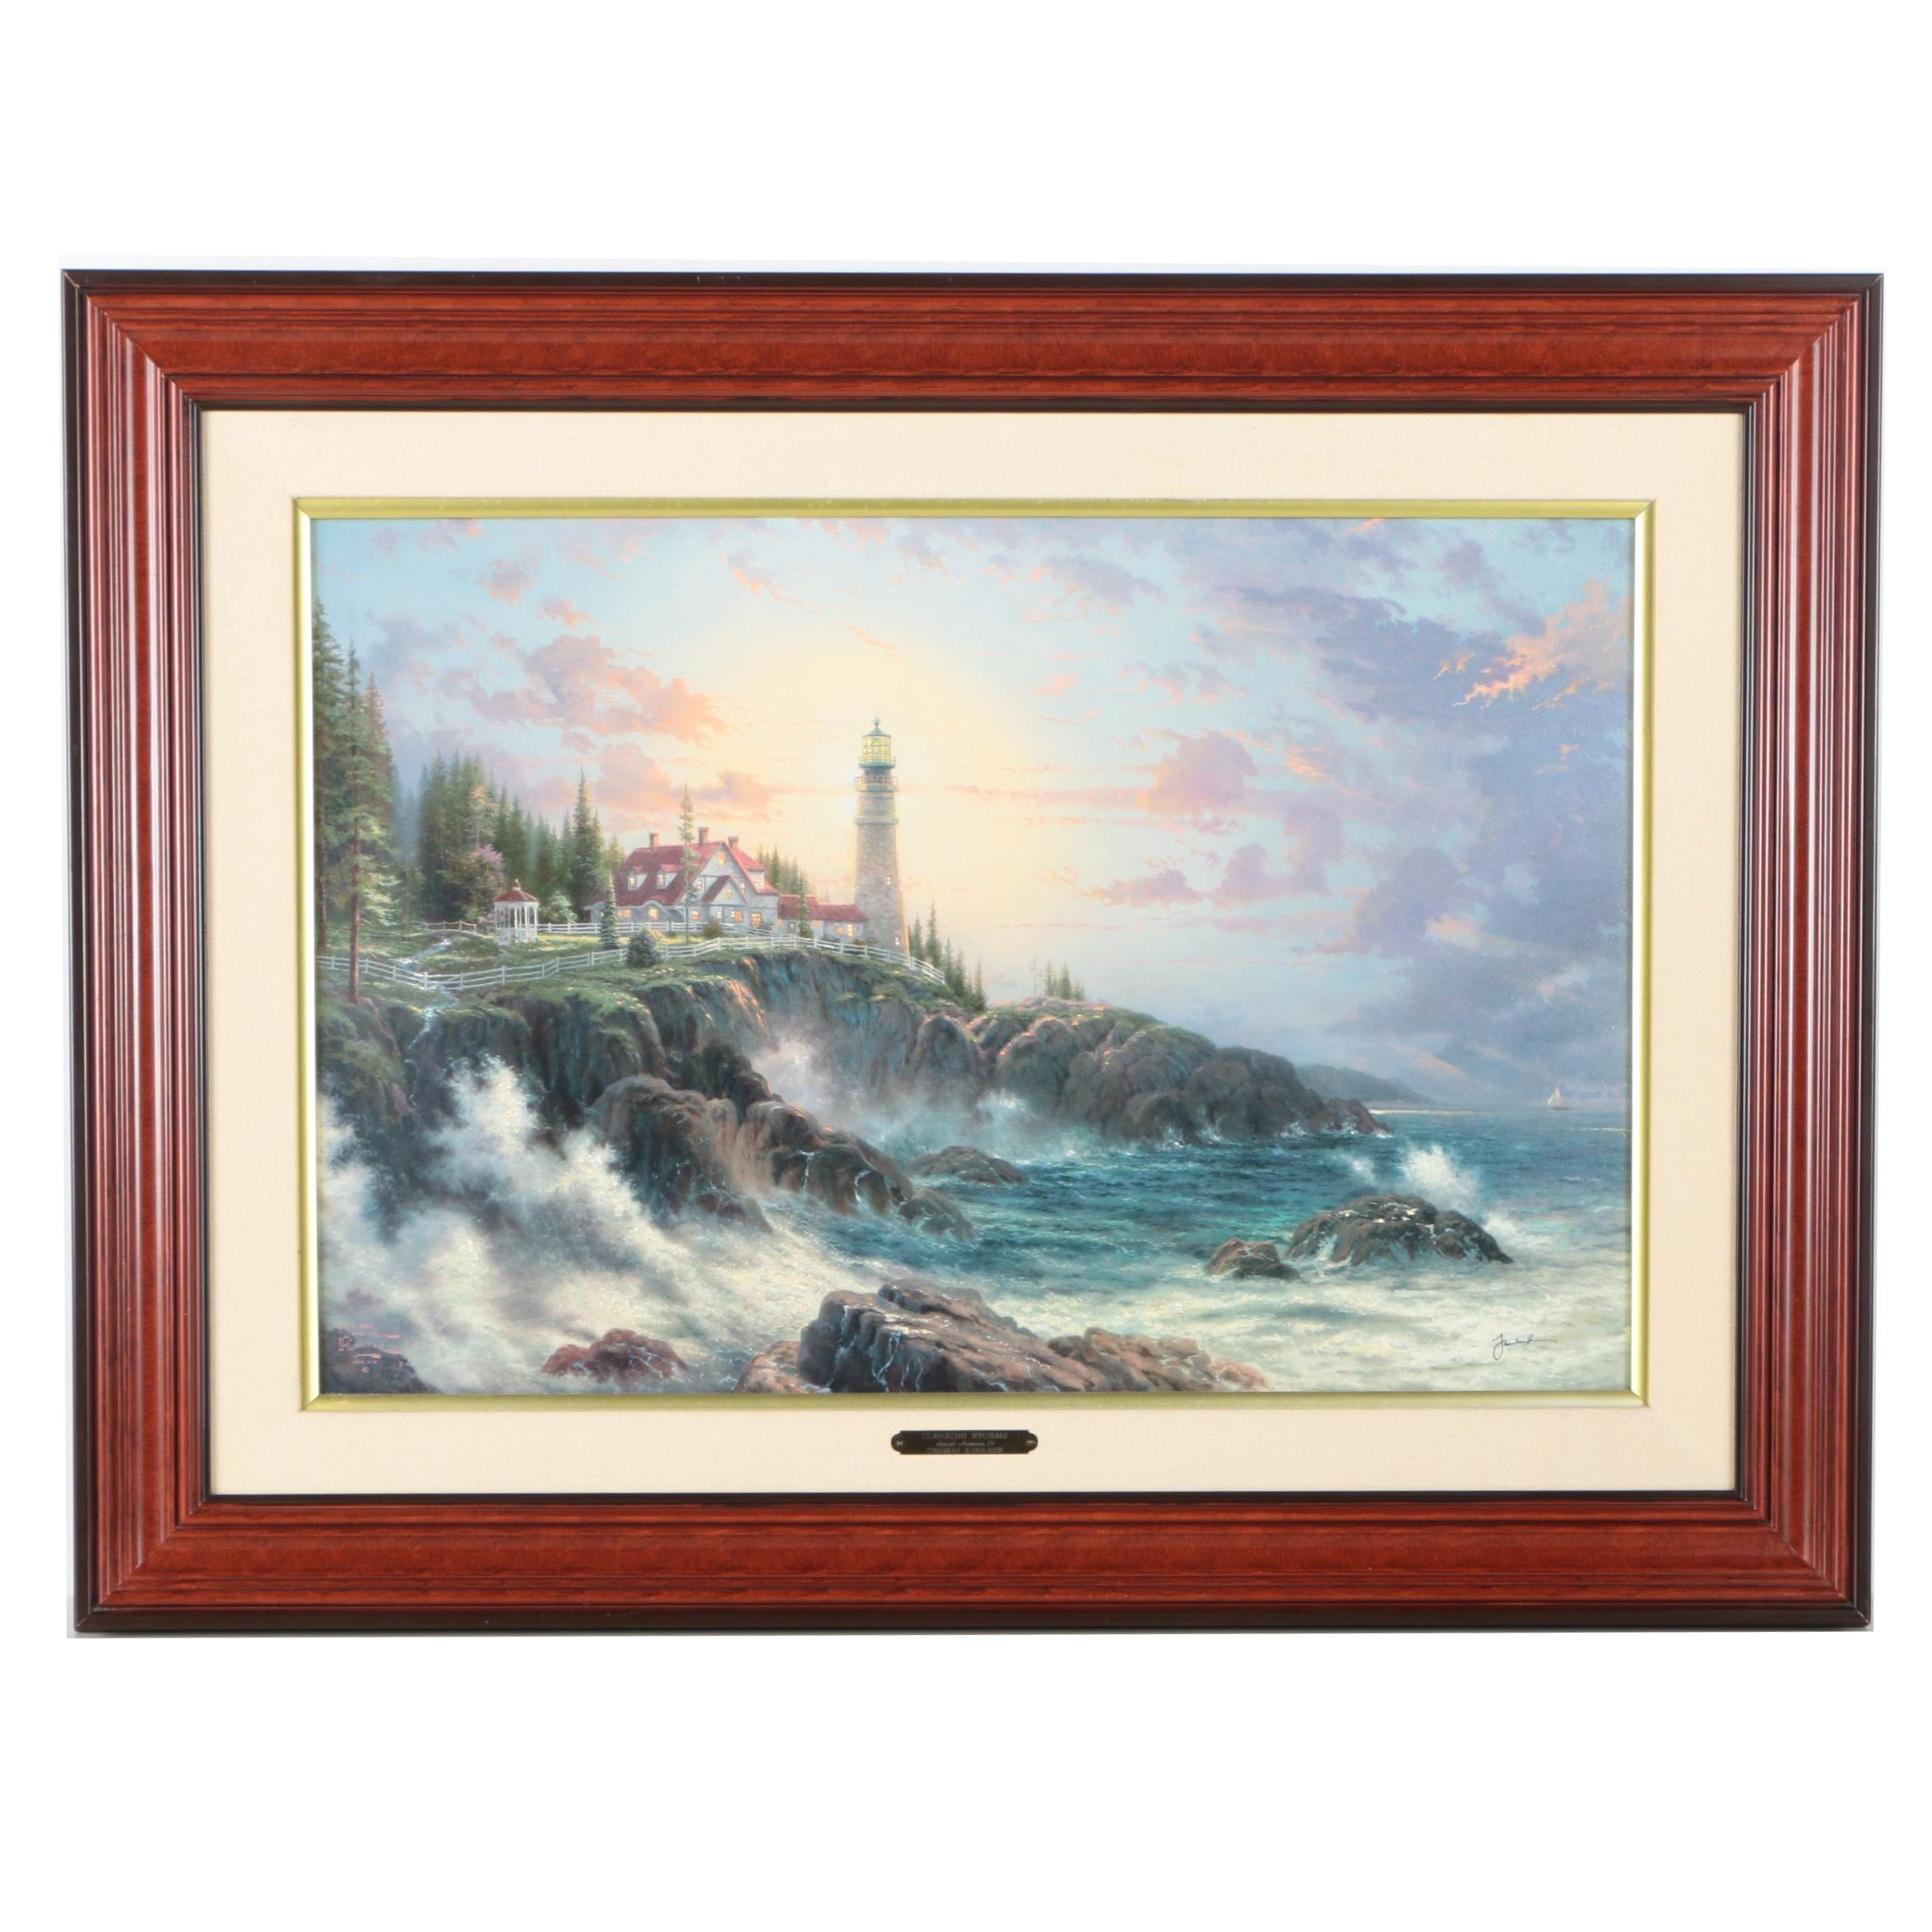 "Thomas Kinkade Limited Edition Embellished Offset Lithograph on Canvas ""Clearing Storms"""